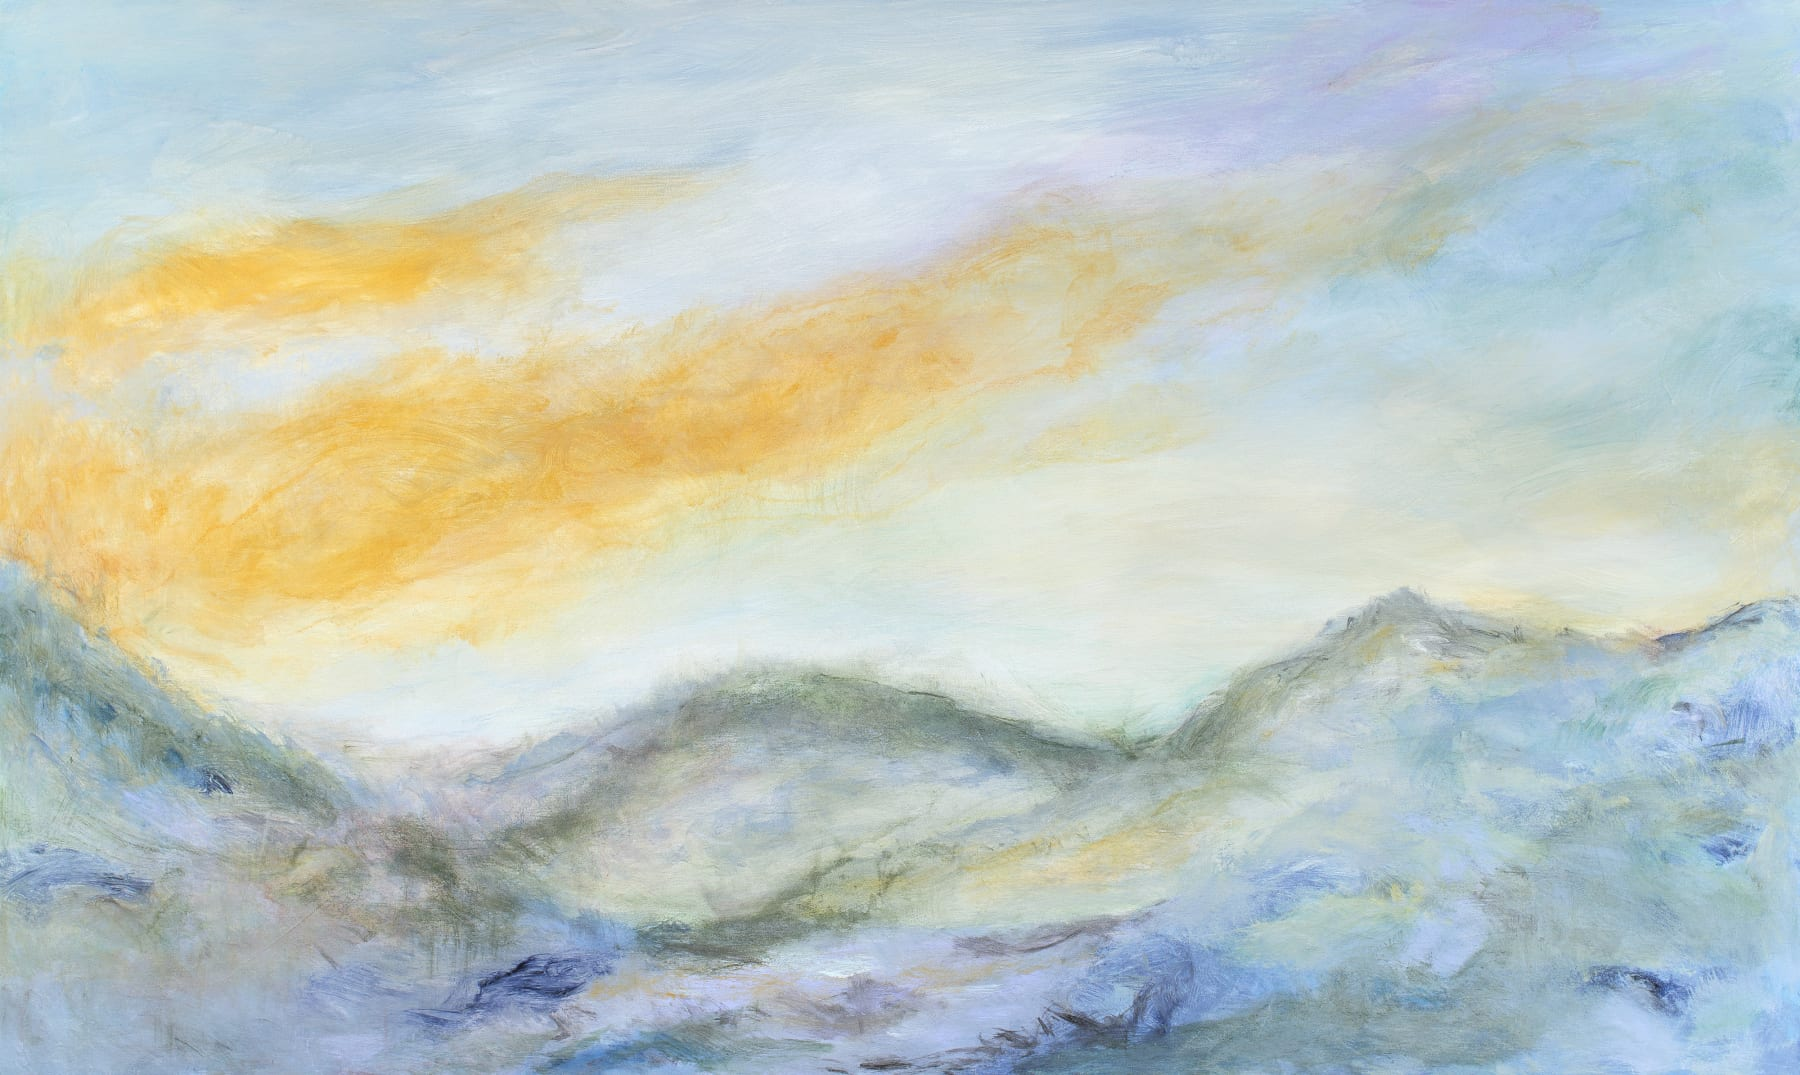 Patricia Qualls, Listening to the Mountains, 2020